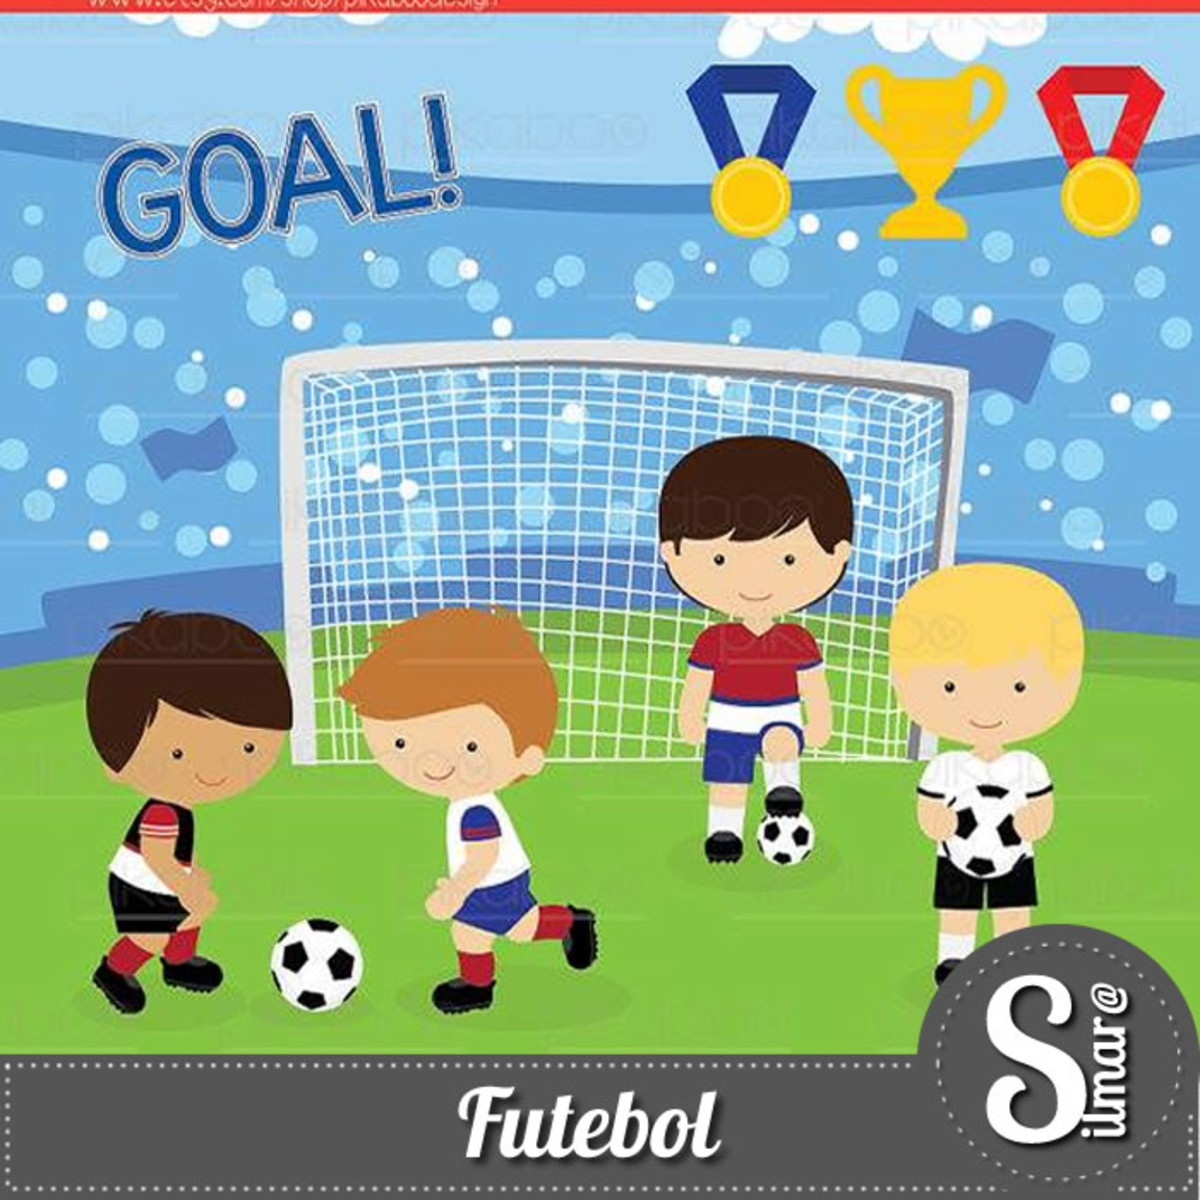 Kit Digital Futebol 8 - Scrap no Elo7  1e63abff121d4